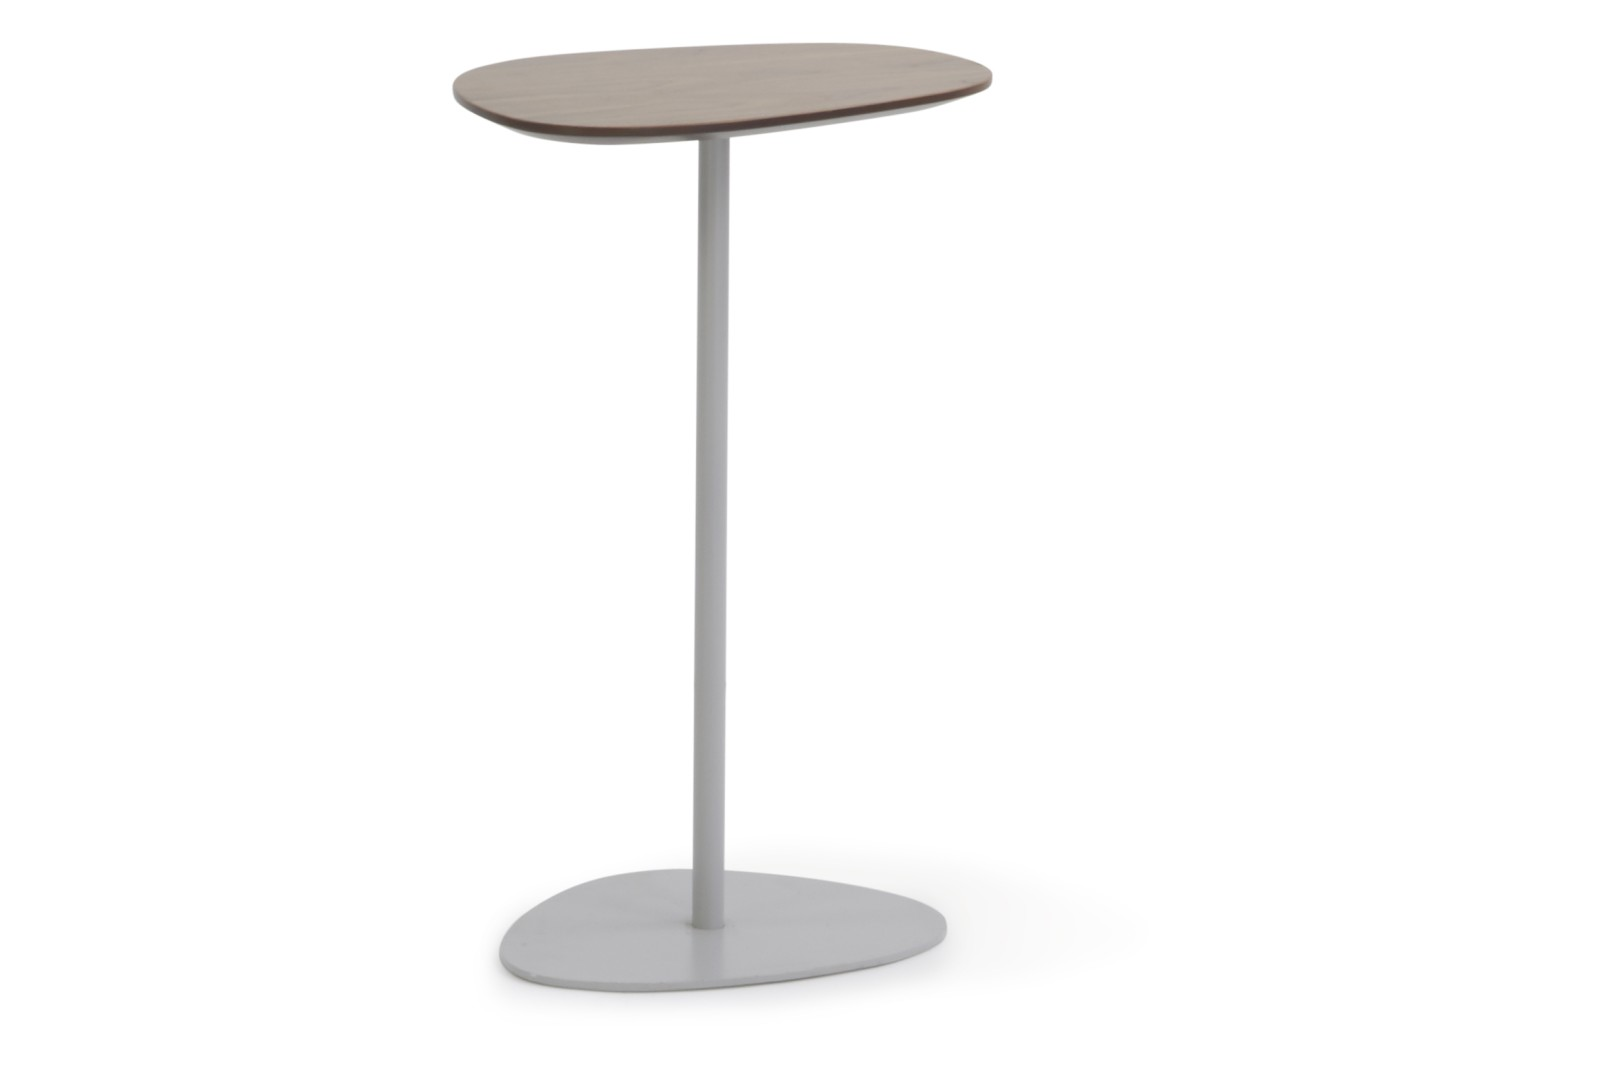 HM63J Pebble High Table Abet 421 Laminate Polished Brass